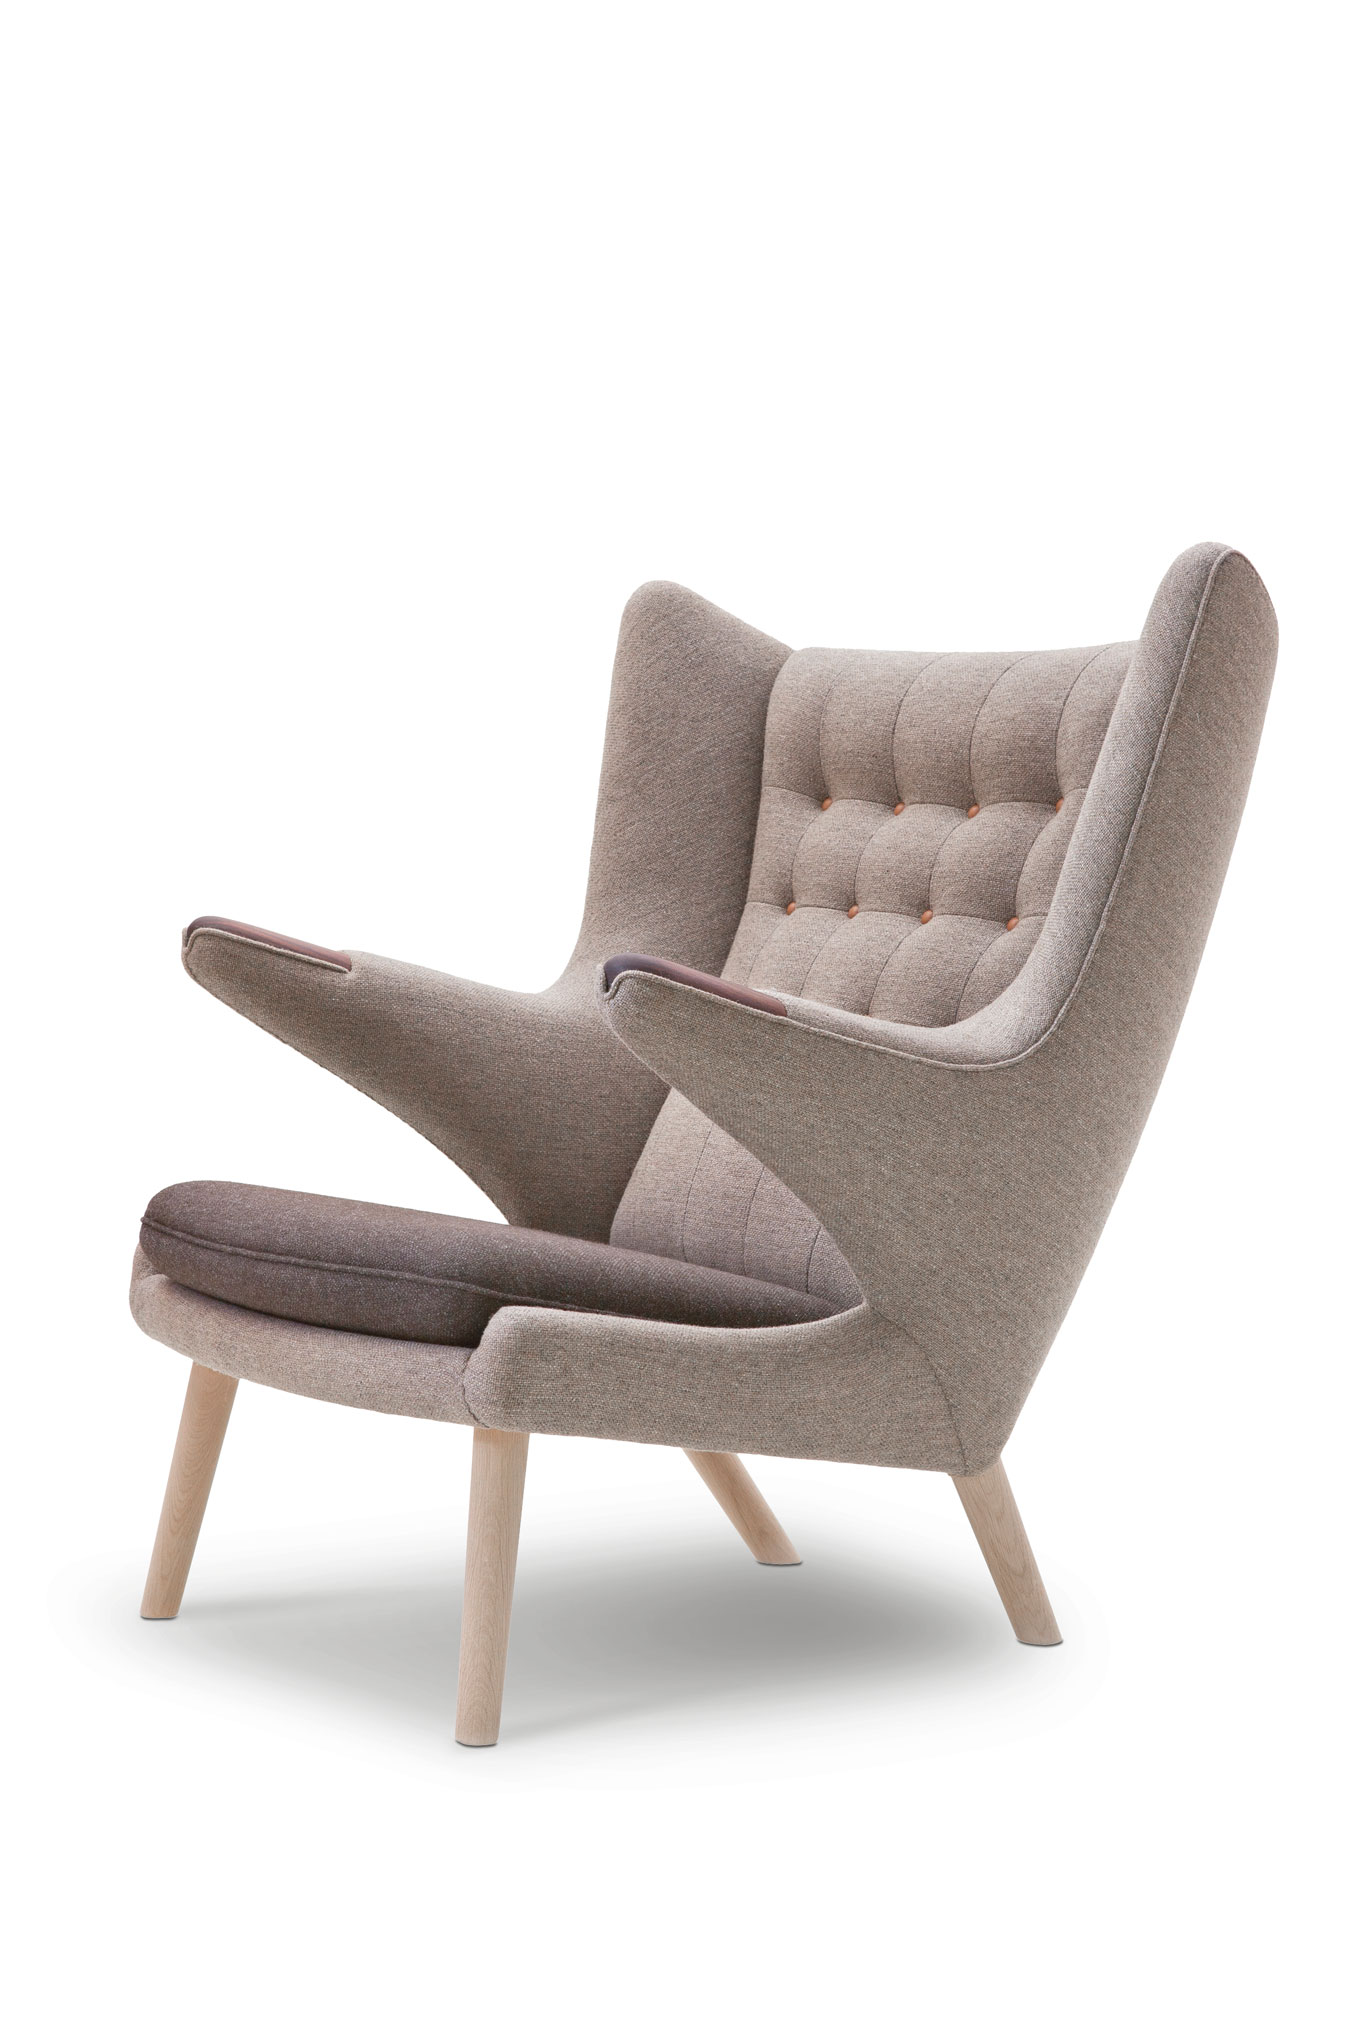 PP19 Papa Bear Chair 1951 by Hans Wegner featured in Chair 500 Designs That Matter